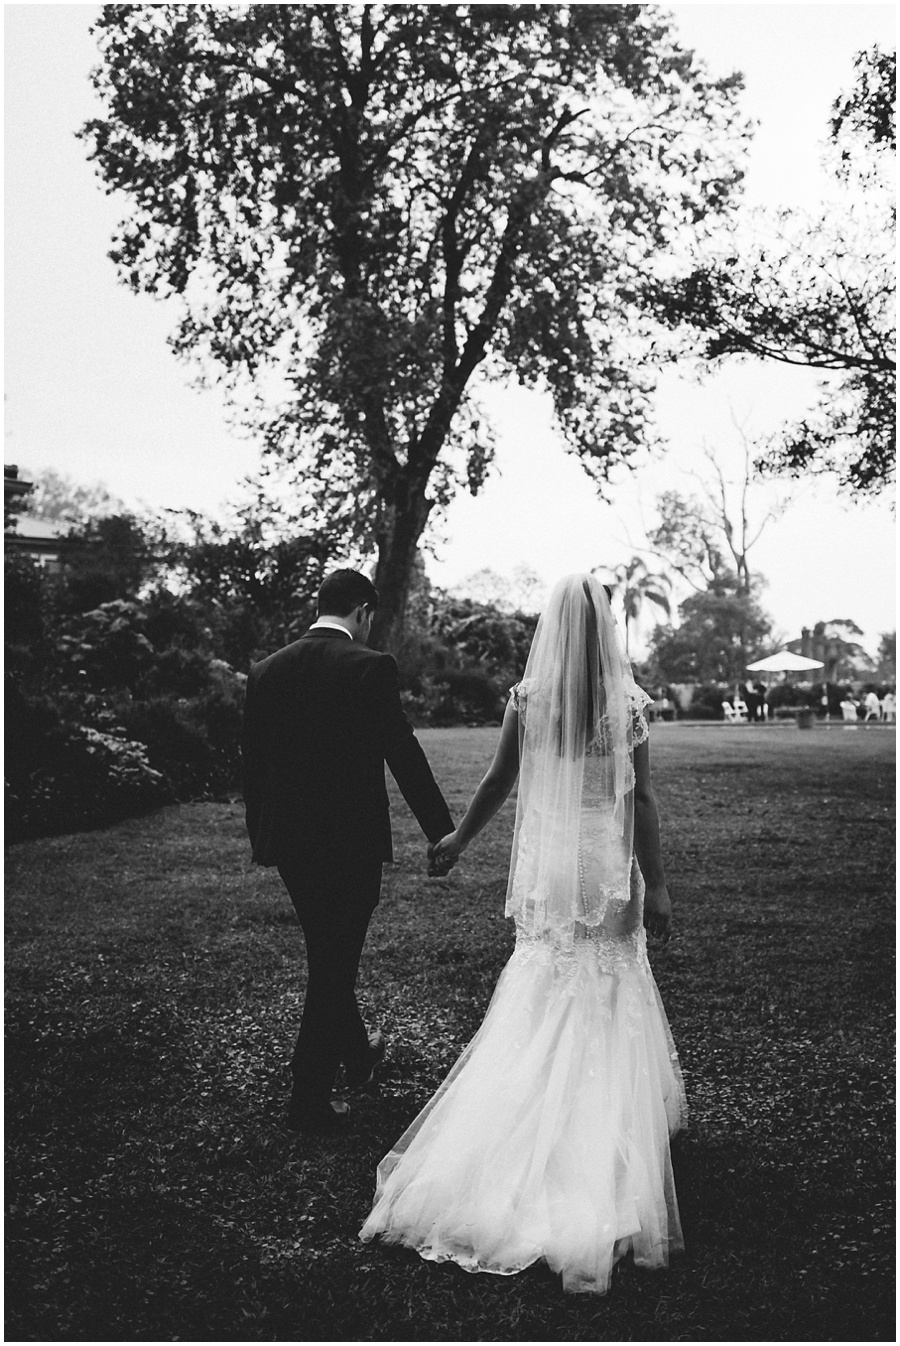 licinda-cohan-kok-wedding-barker-manor-kloof-christy-long-exposure_0068